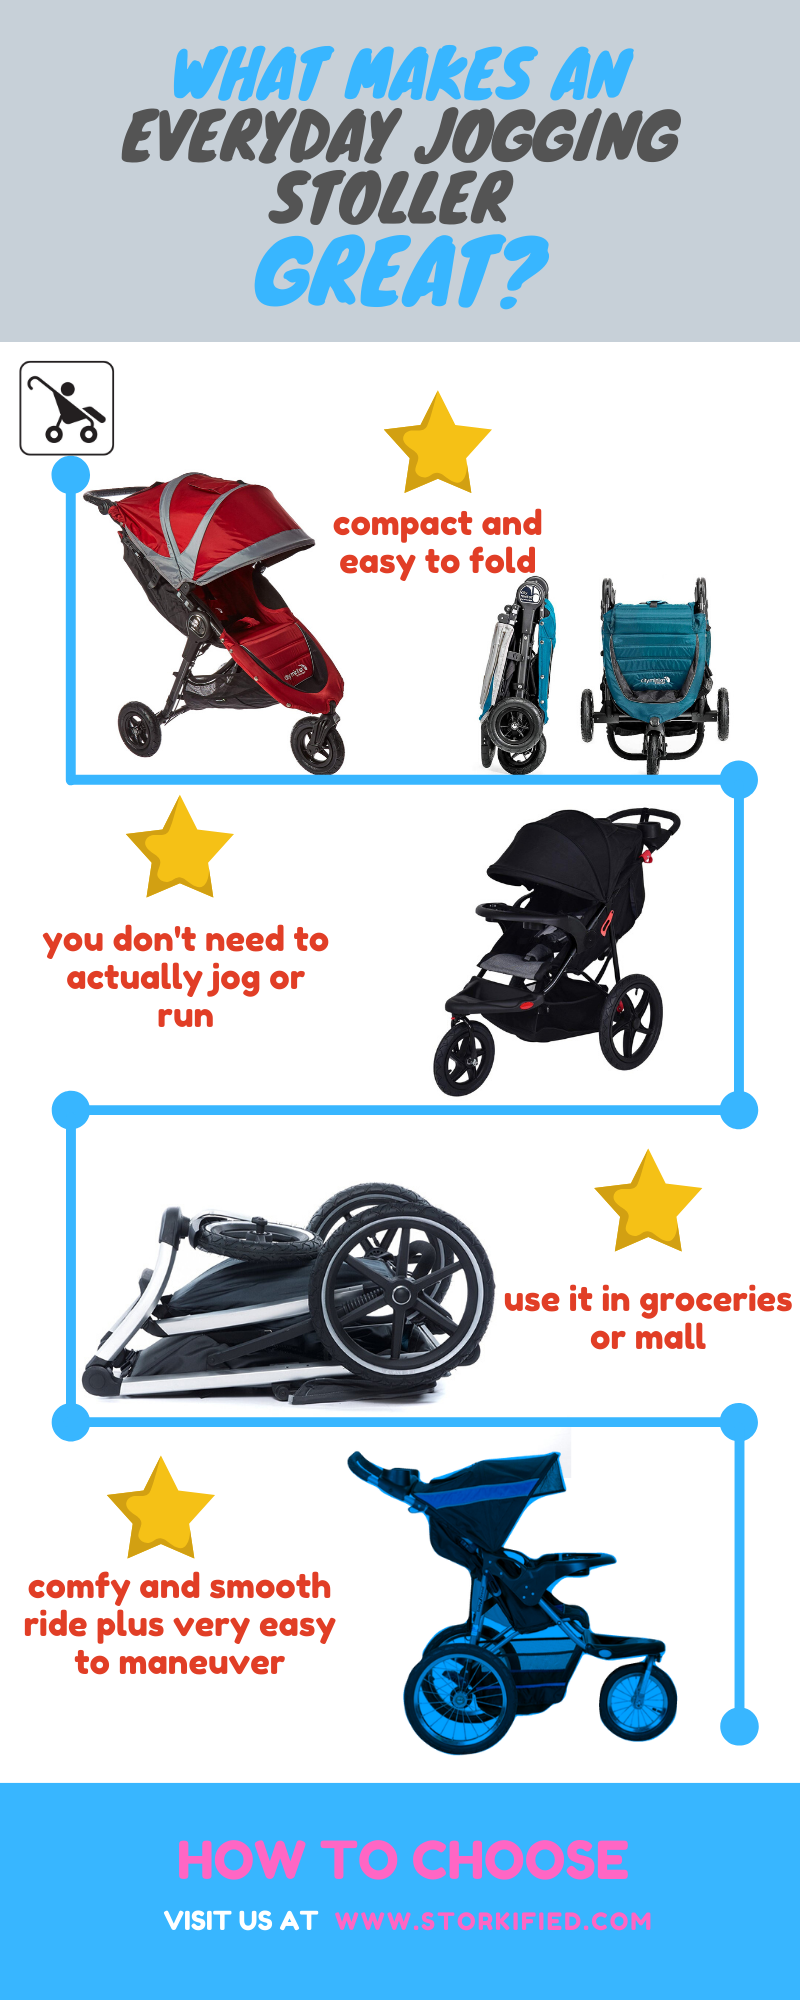 Best Jogging Stroller for Everyday Use (Top Choices this